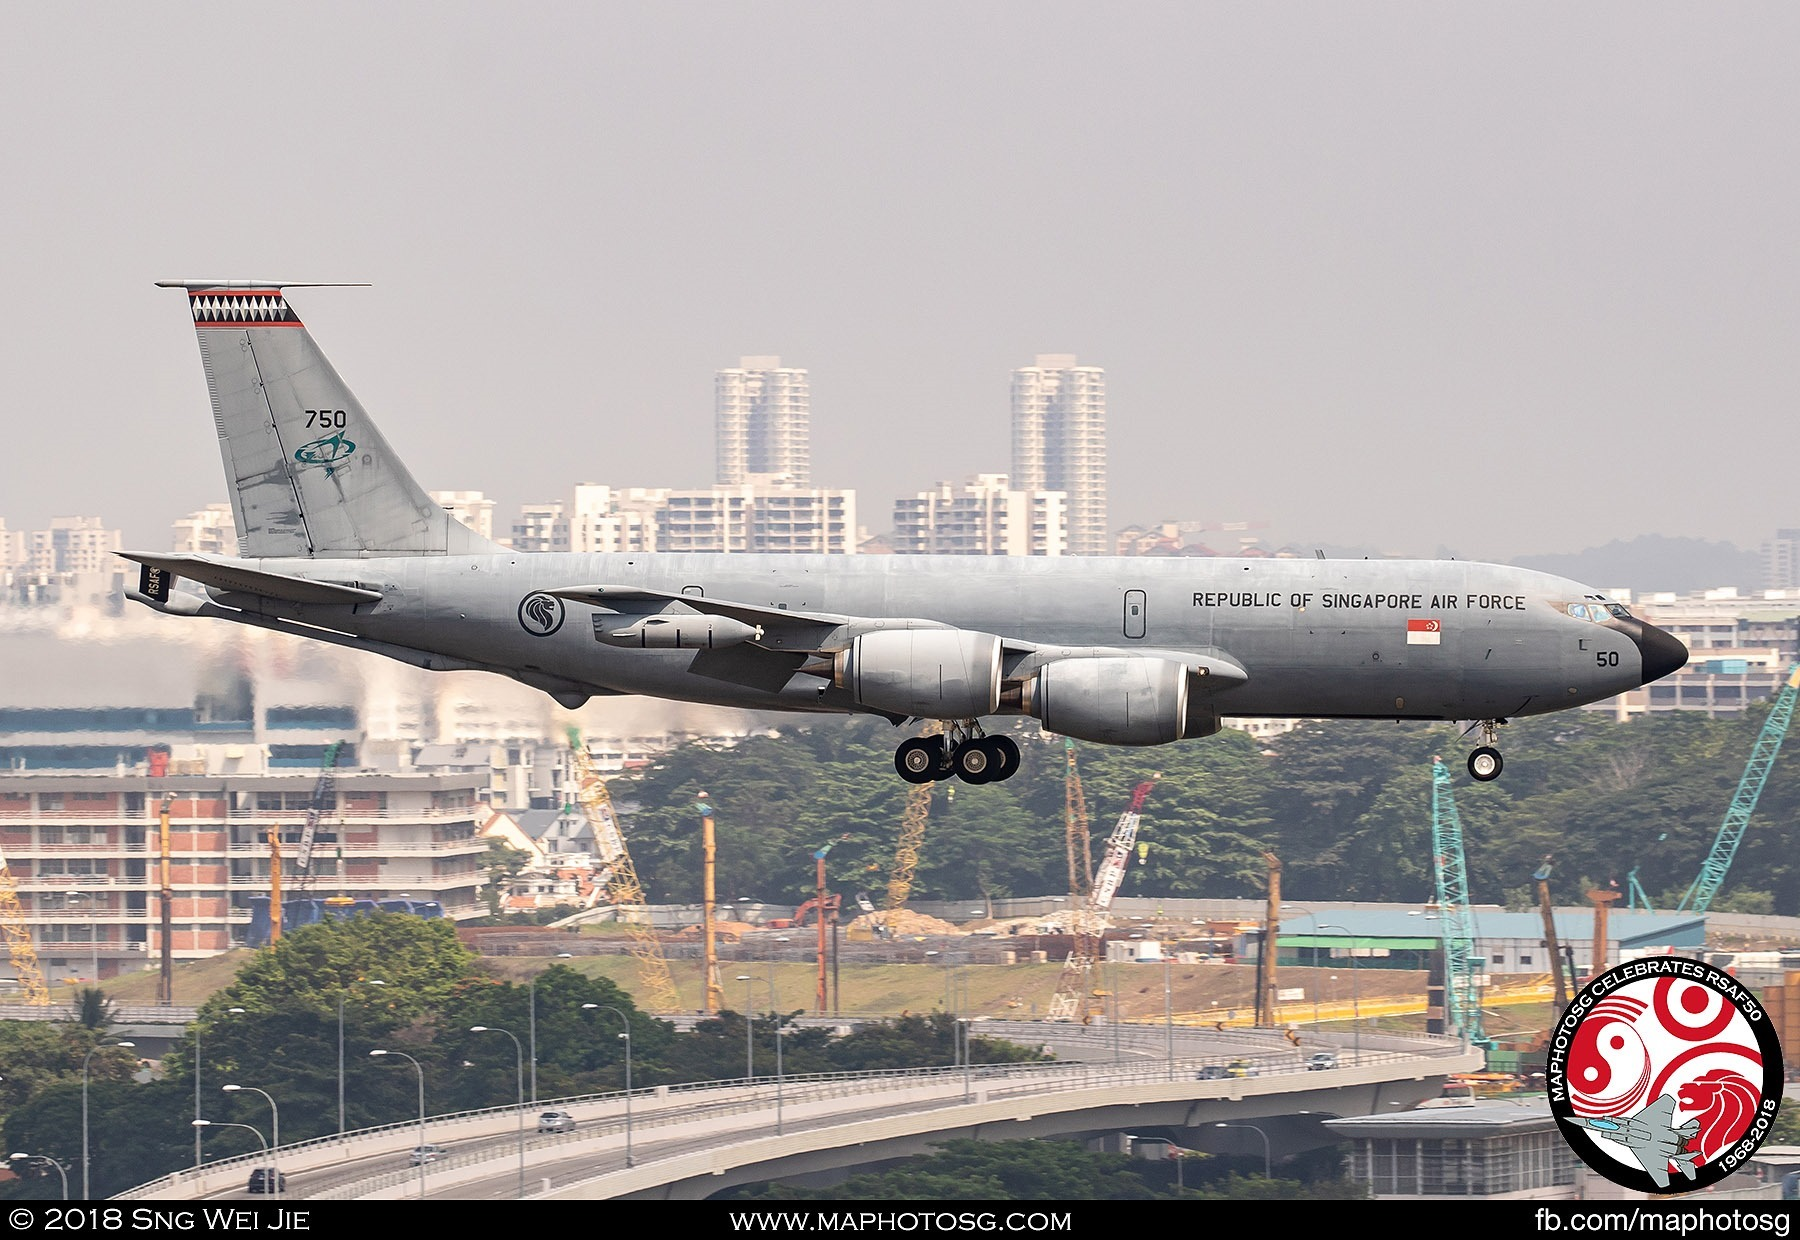 KC-135R Stratotanker on finals to Paya Lebar Air Base after the end of the aerial displays.